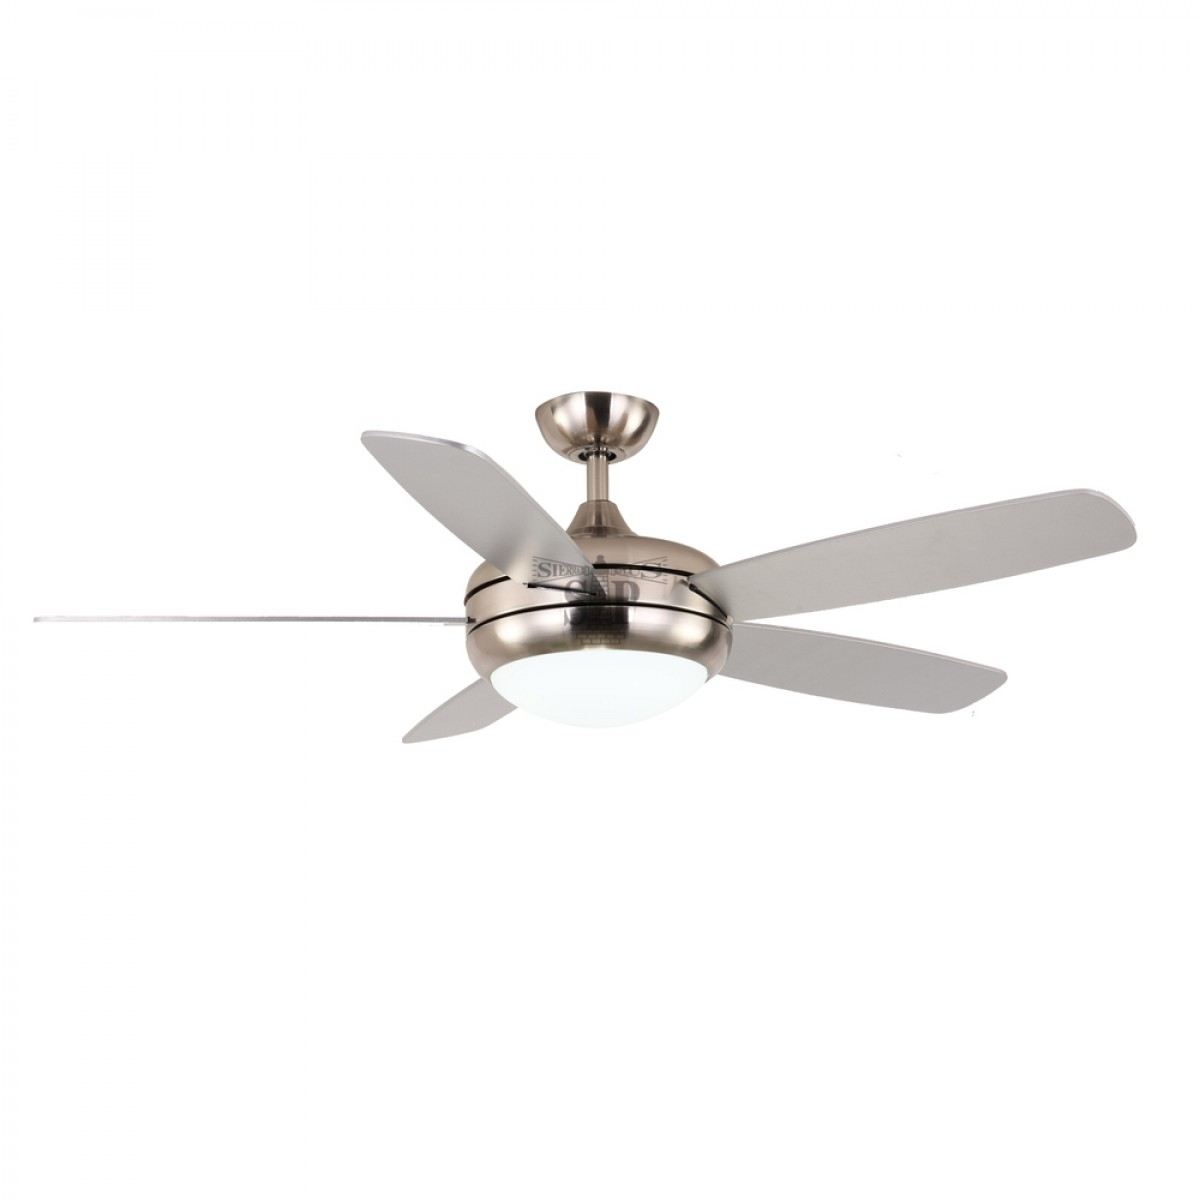 GOLD LUX 3307B 52-inch Decorative Ceiling Fan c/w LED Light [5 Blade] (Silver)